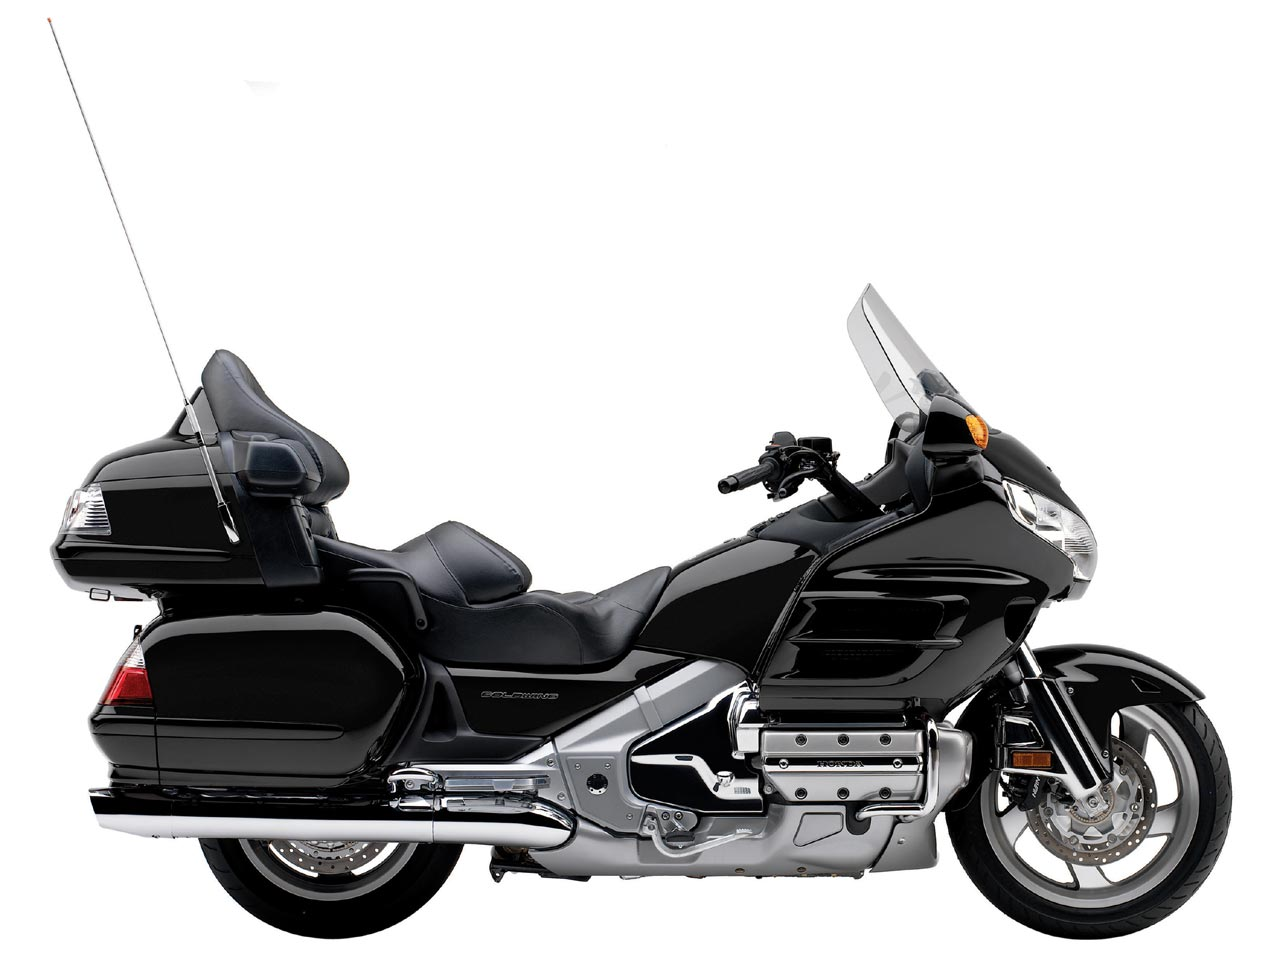 Honda Silver Wing ABS 2006 #11